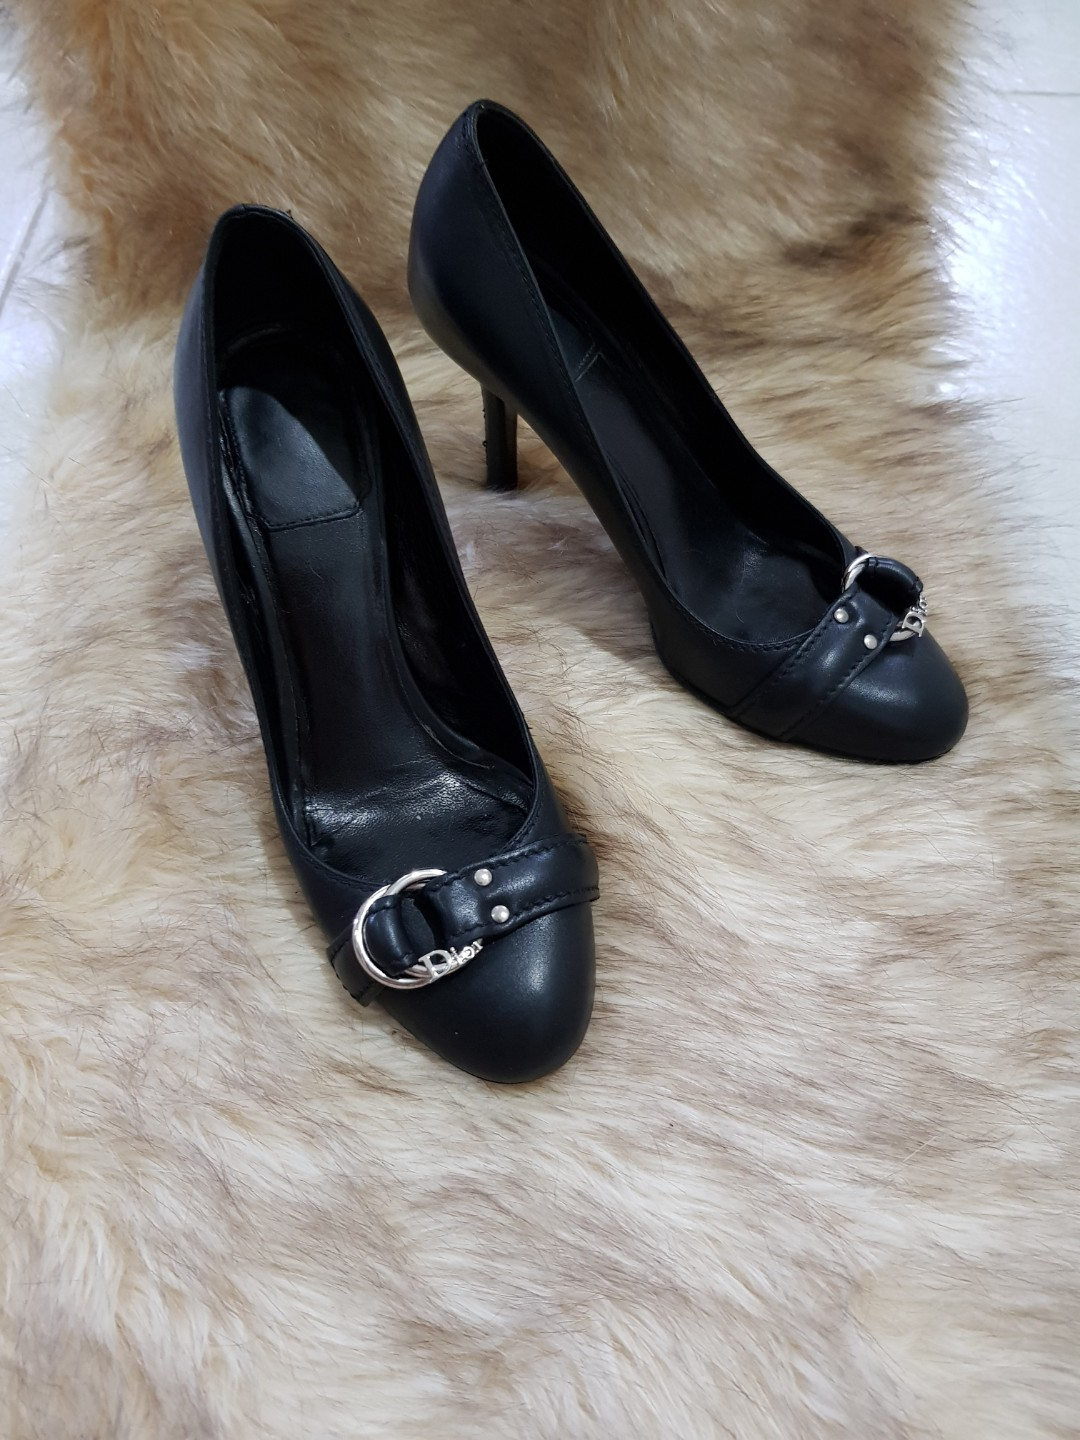 6f067fdcc7 Authentic Christian Dior Black Leather Pumps Size 36, Women's ...